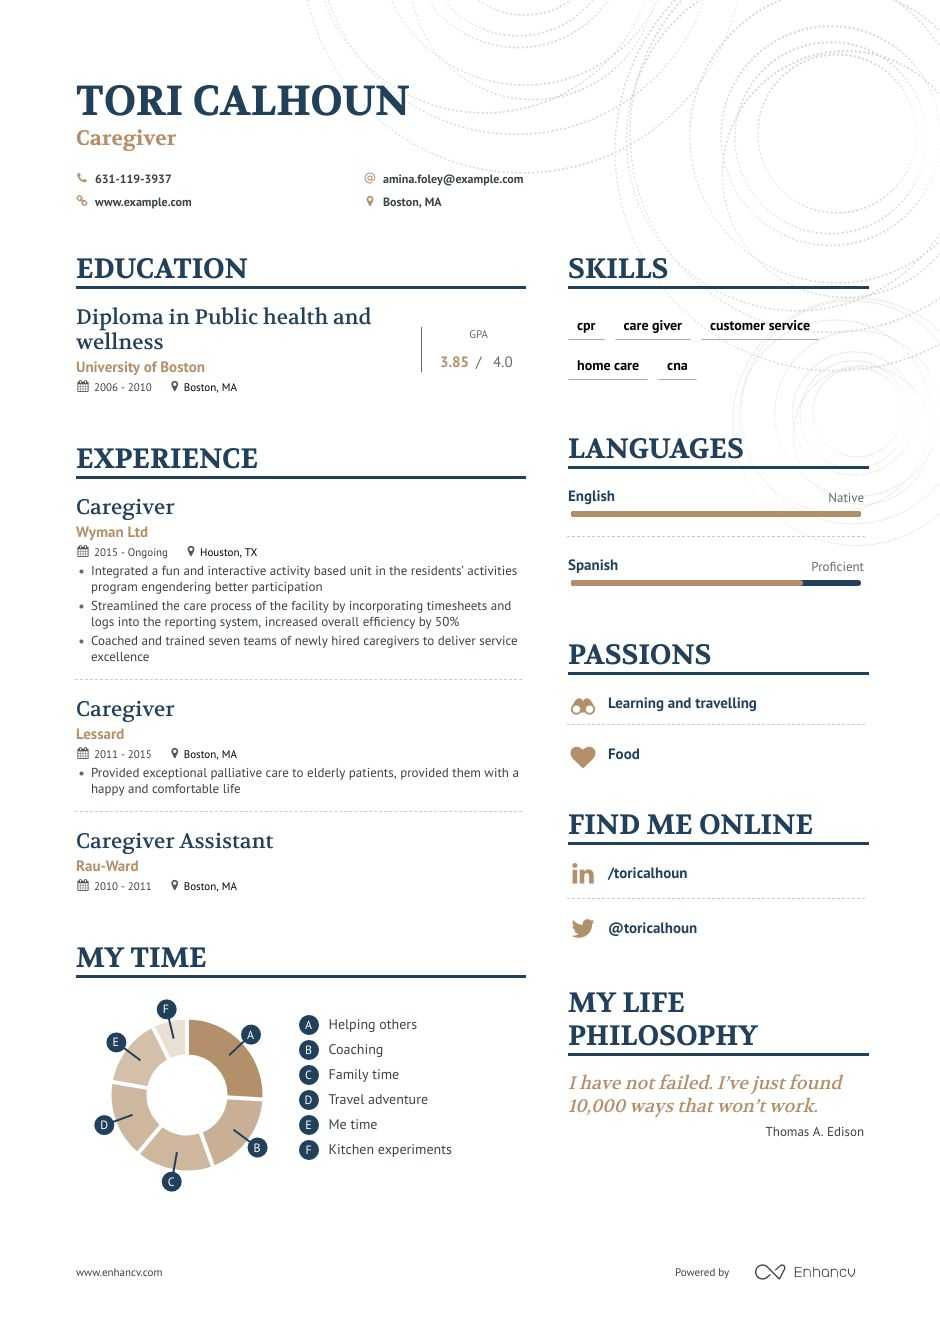 caregiver resume examples do and don ts for enhancv description army intelligence analyst Resume Caregiver Description For Resume